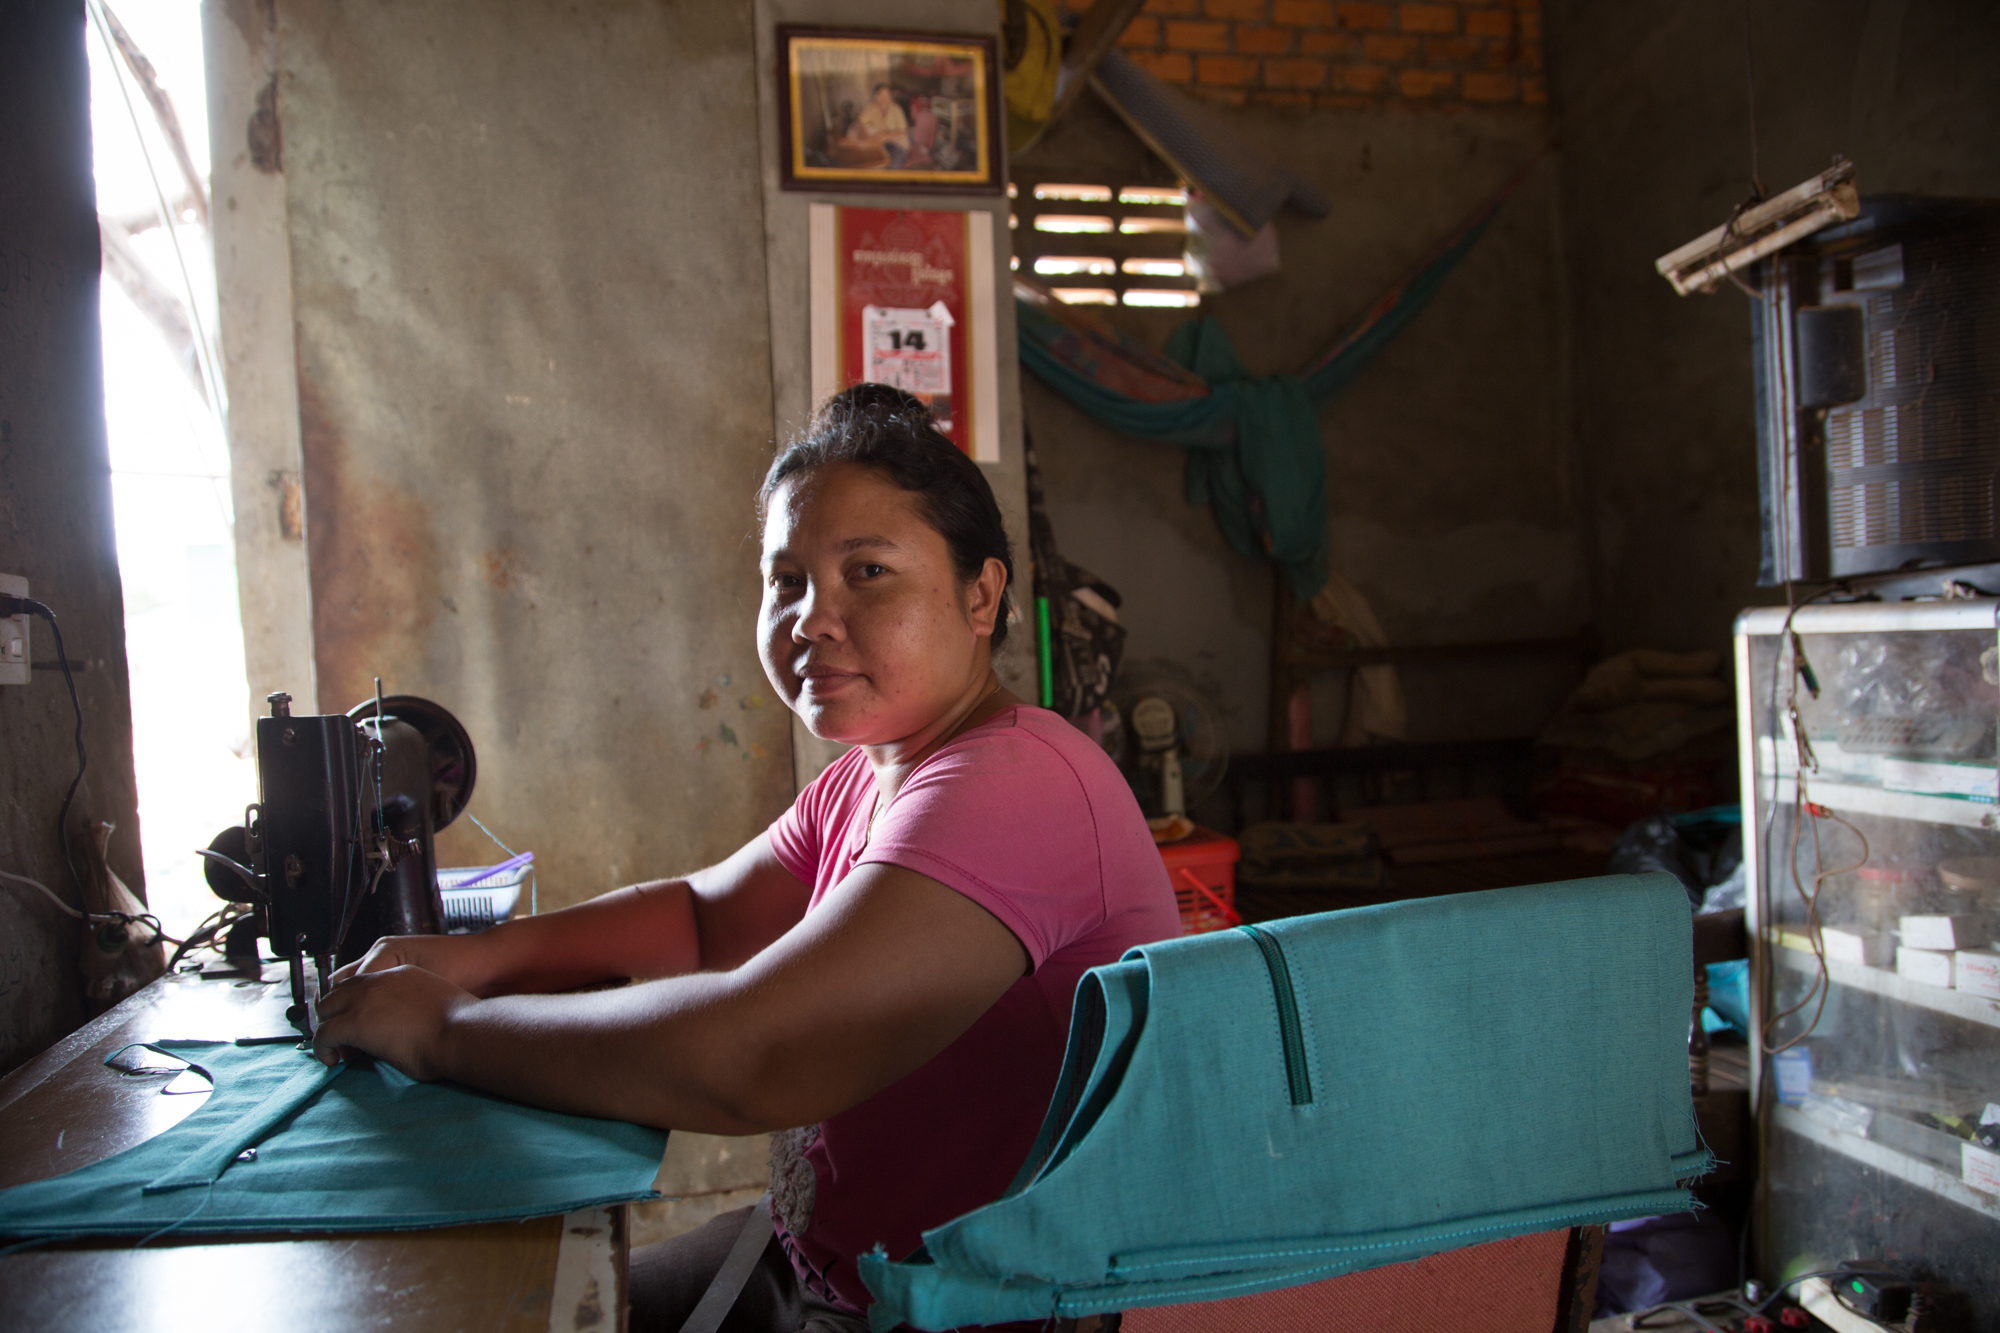 Capacity Building and Market Access, Cambodia Case Study - In 2009, Nomi Network began working with a local social enterprise and training center in Phnom Penh whose mission is to provide transitional jobs for survivors and women at risk of sex trafficking. Through our partnership, Nomi Network designed and developed a product line made by survivors, which Nomi marketed globally. The women receive competitive wages and medical care. All proceeds from Nomi Network's product sales are invested in improving benefits, training, and career development programs for these women,, as well as capacity building and market access for the social enterprise. Prior to receiving Nomi Network's technical assistance and initial order of bags, the enterprise had been planning to shut down due to insufficient product demand coupled with the downturn in the garment manufacturing industry. This would have resulted in 23 women losing their jobs. Our initial order allowed them to keep their doors open and keep their women employed. By 2011, as a result of Nomi Network's marketing efforts there was an increased demand for Nomi Network bags and our partner was able to increase the number of survivors employed to 80 individuals. In 2012, Nomi Network was able to help this social enterprise secure an order from Walmart, one of the largest retailers in the world.